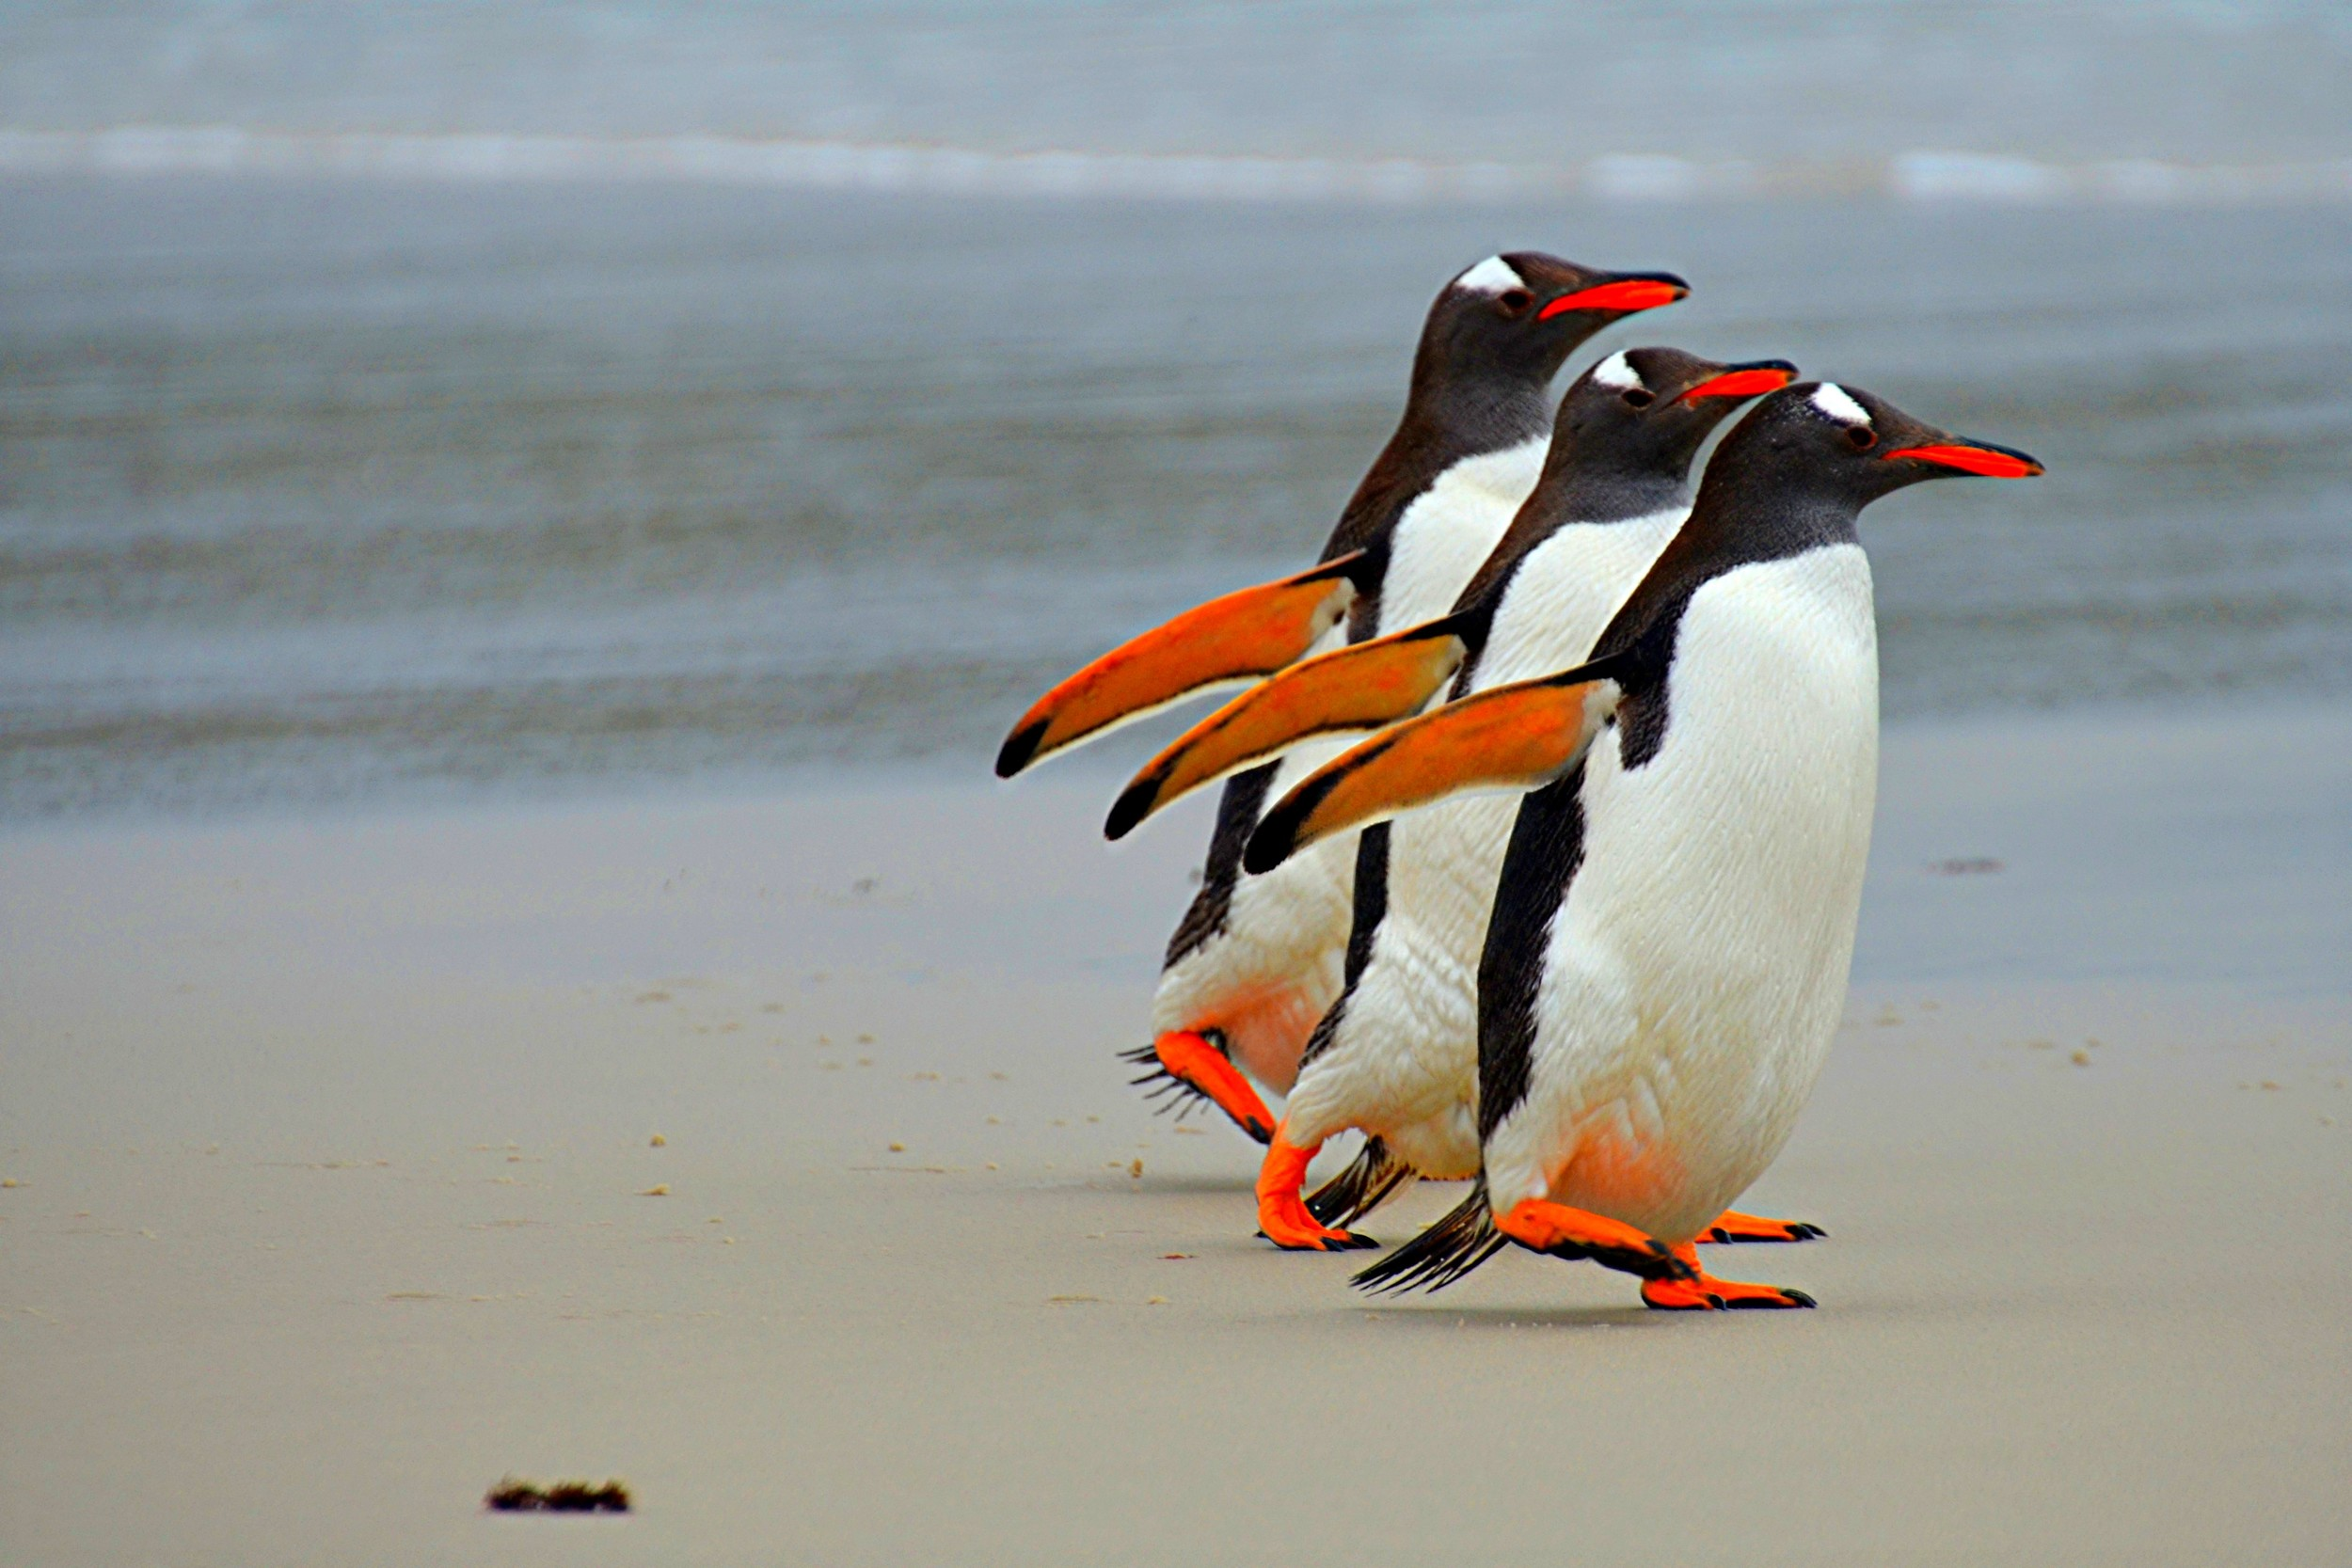 Gentoo penguins on the Falkland Islands